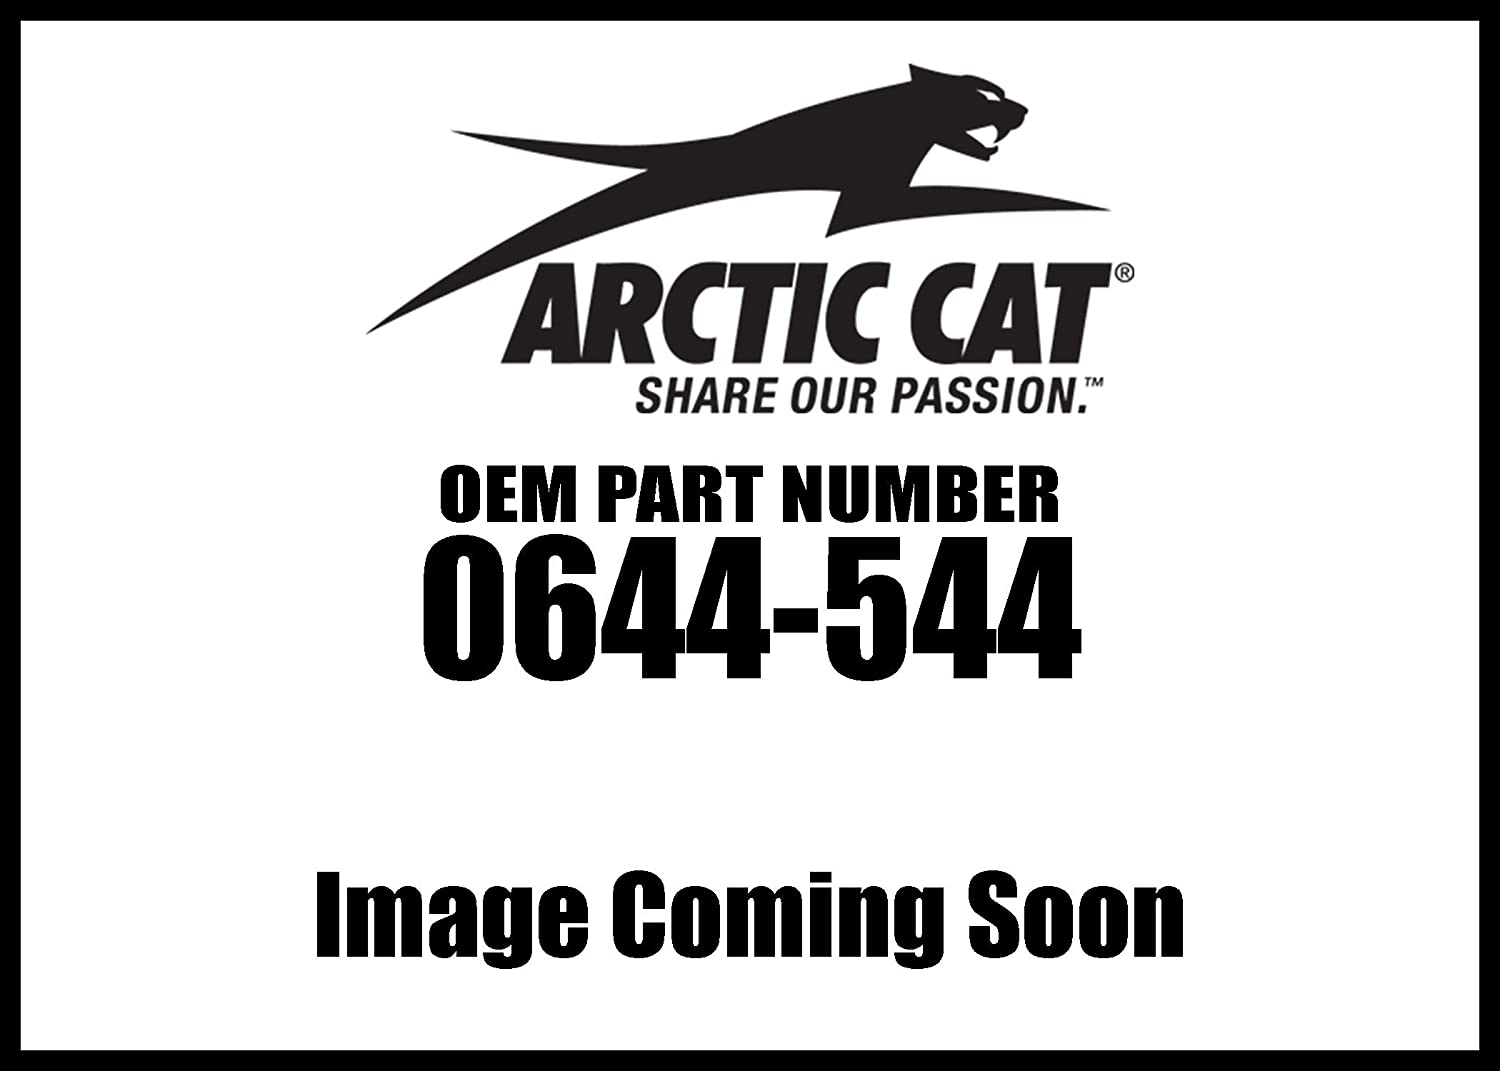 Arctic Cat 0644-544 NEEDLE NITROGEN Denver Mall SAFETY New product! New type